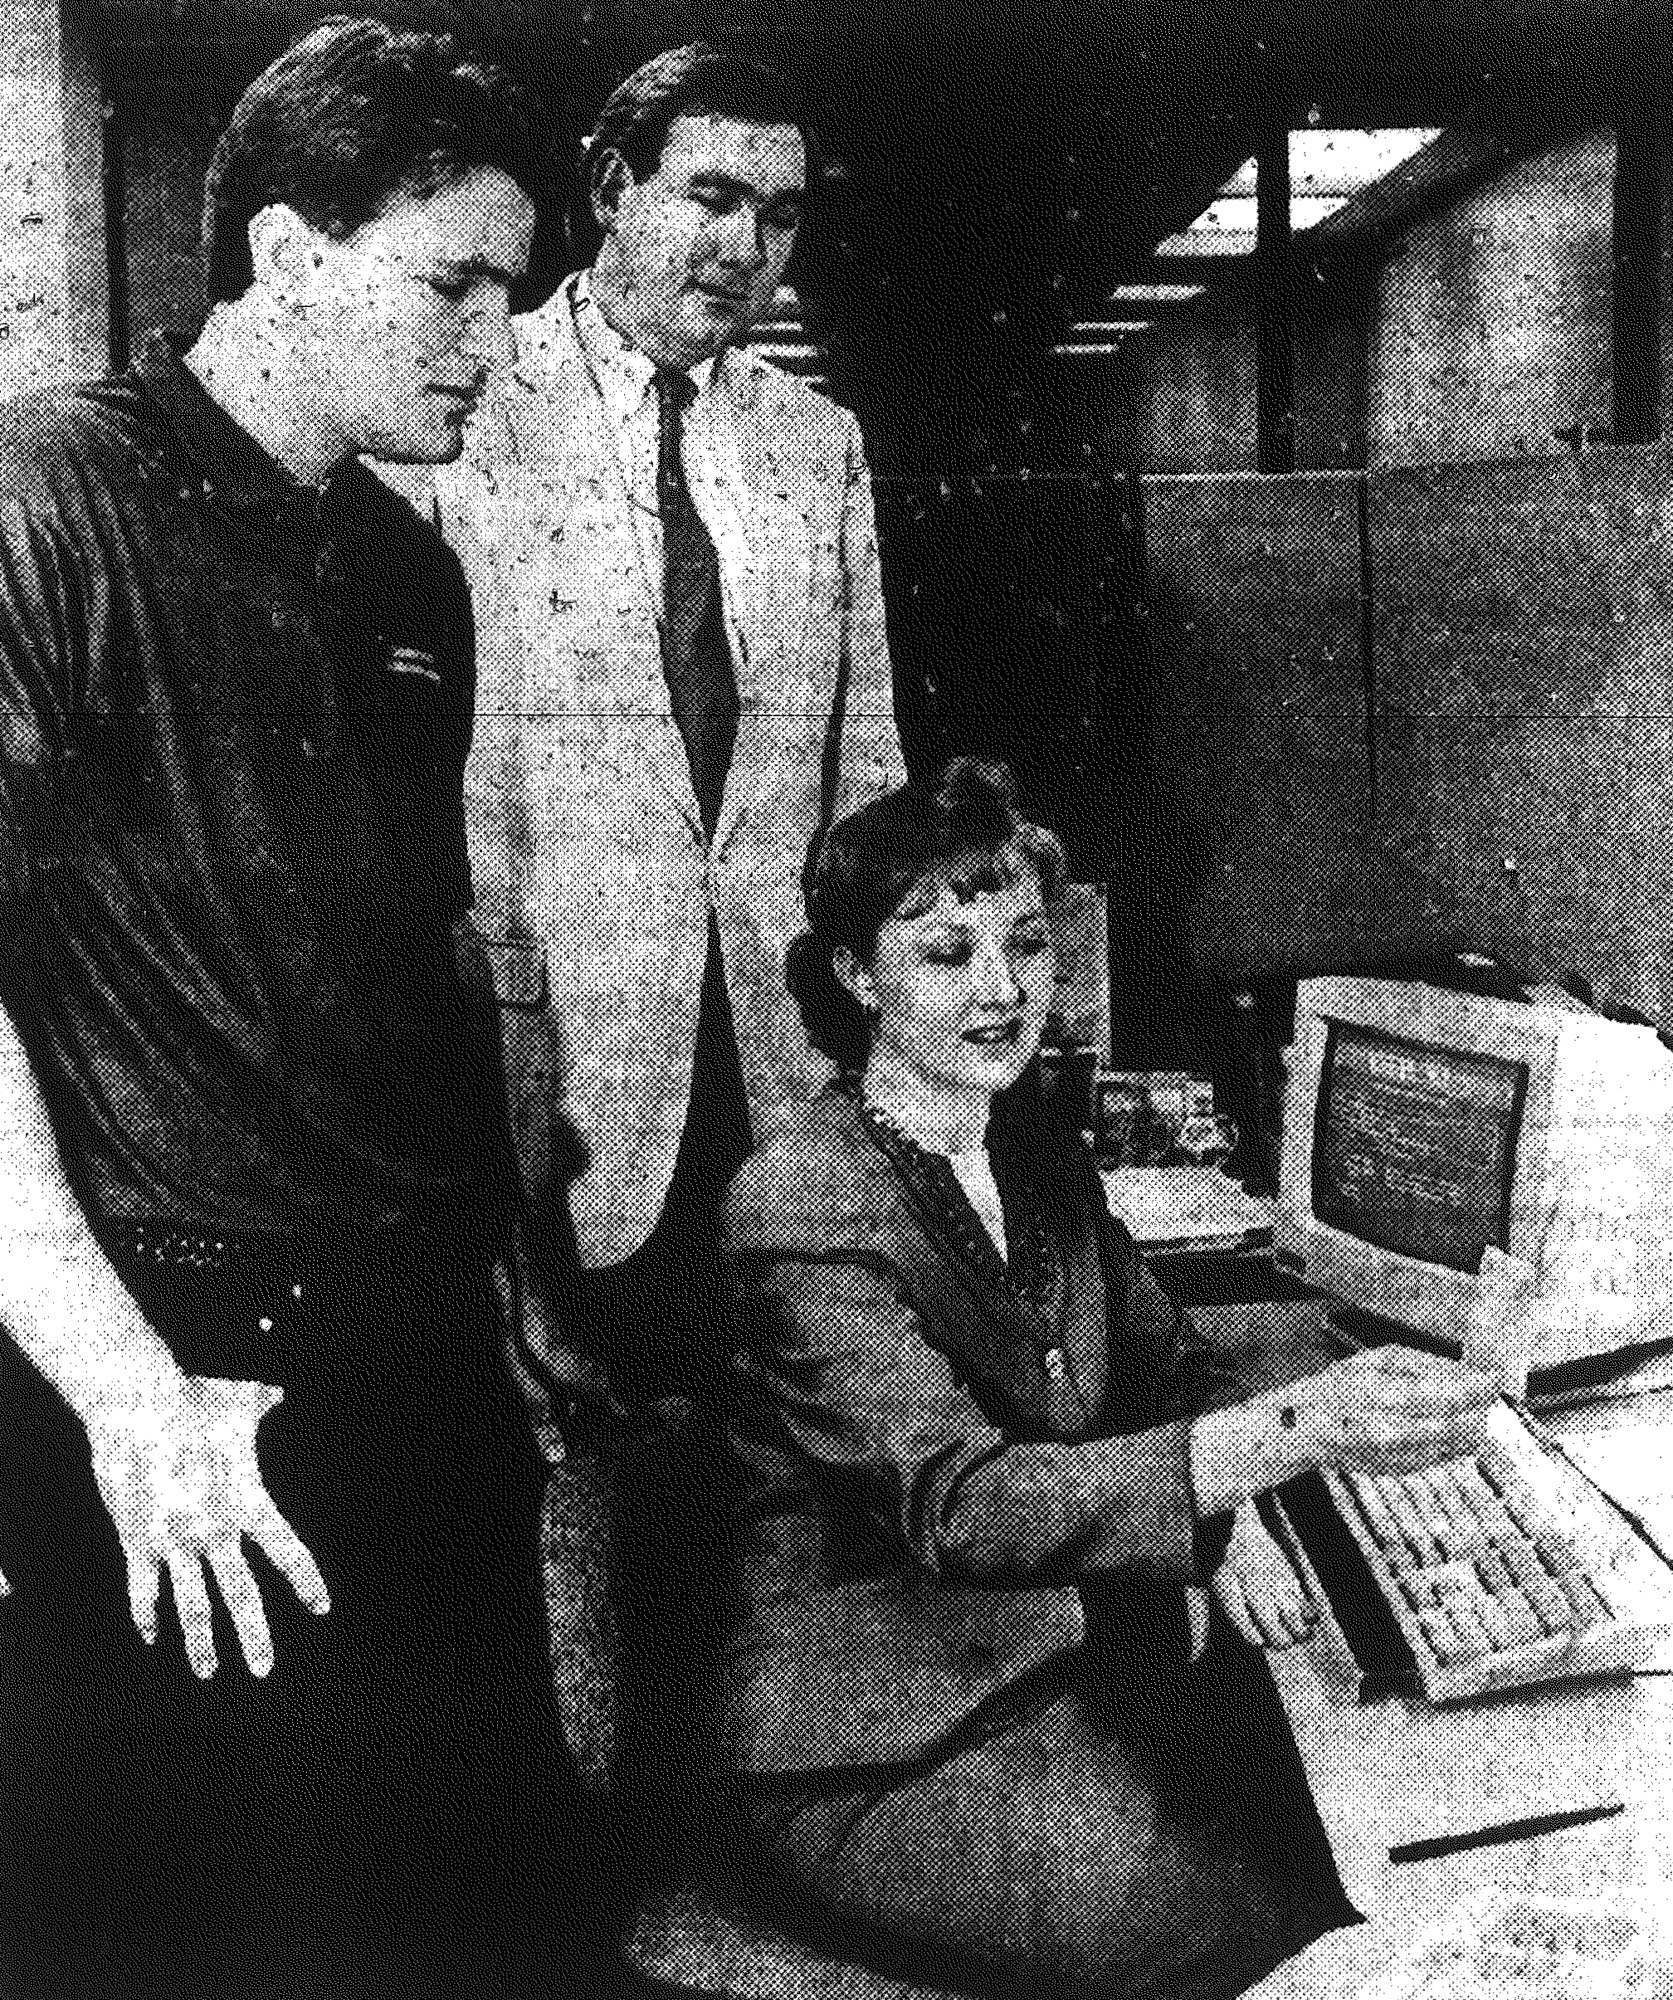 1992 - University of South Carolina Sumter student Hayne Painter, left, and Dale Bullard, assistant dean of student affairs, watch as Kathryn Bullard prepares a student development transcript for Painter.